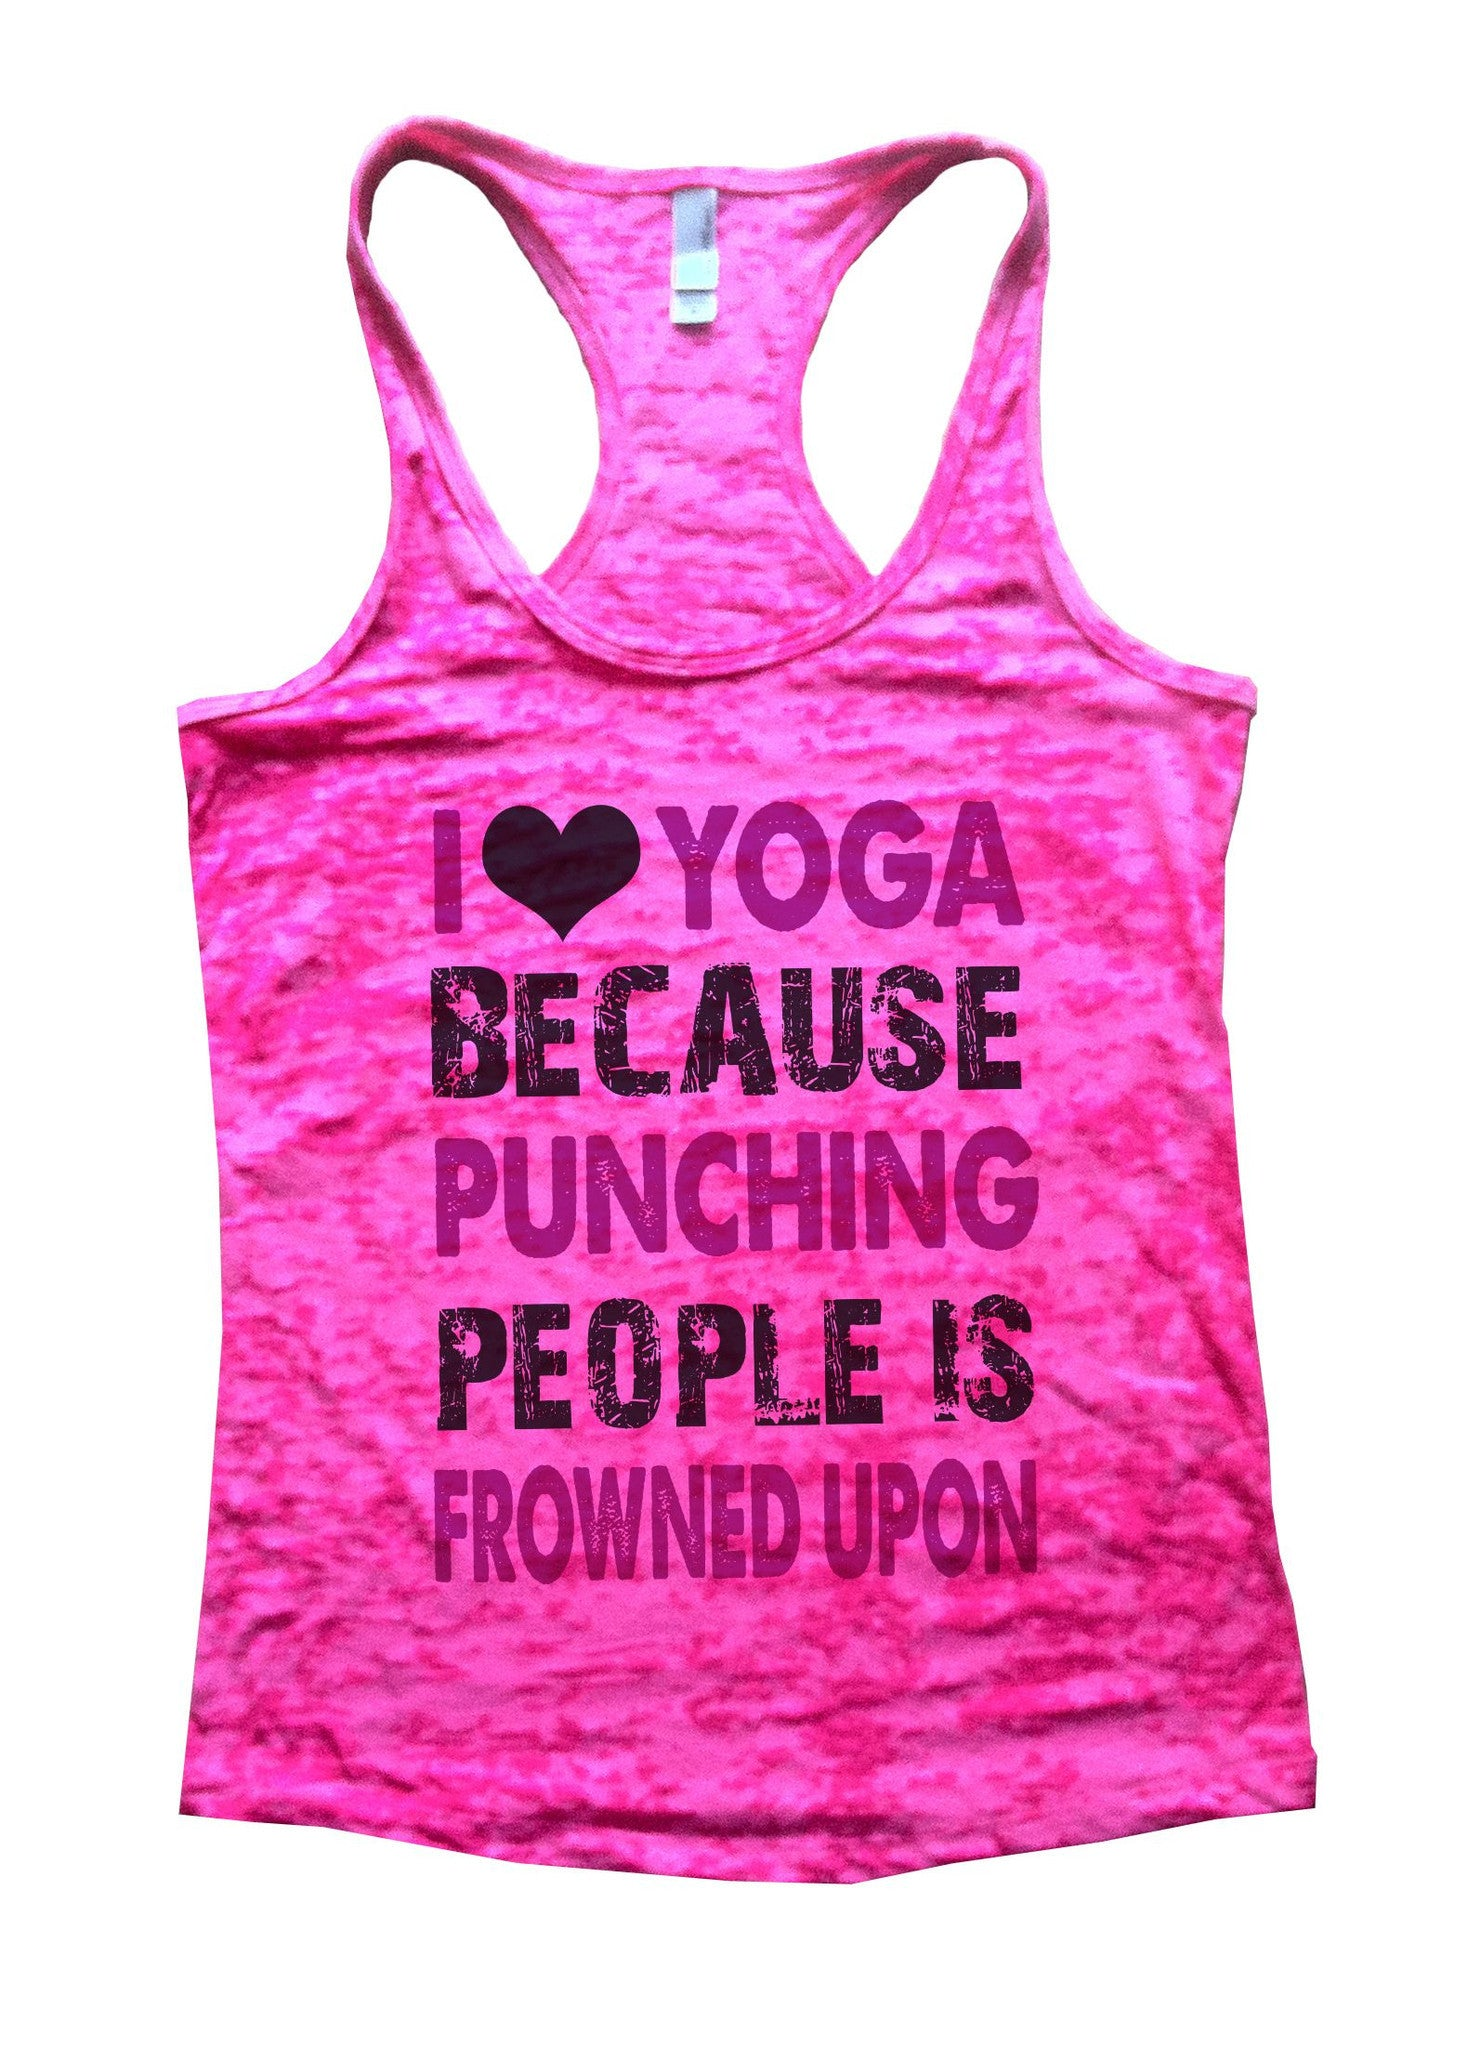 I Love Yoga Because Puncing People Is Frowned Upon Burnout Tank Top By BurnoutTankTops.com - 709 - Funny Shirts Tank Tops Burnouts and Triblends  - 3